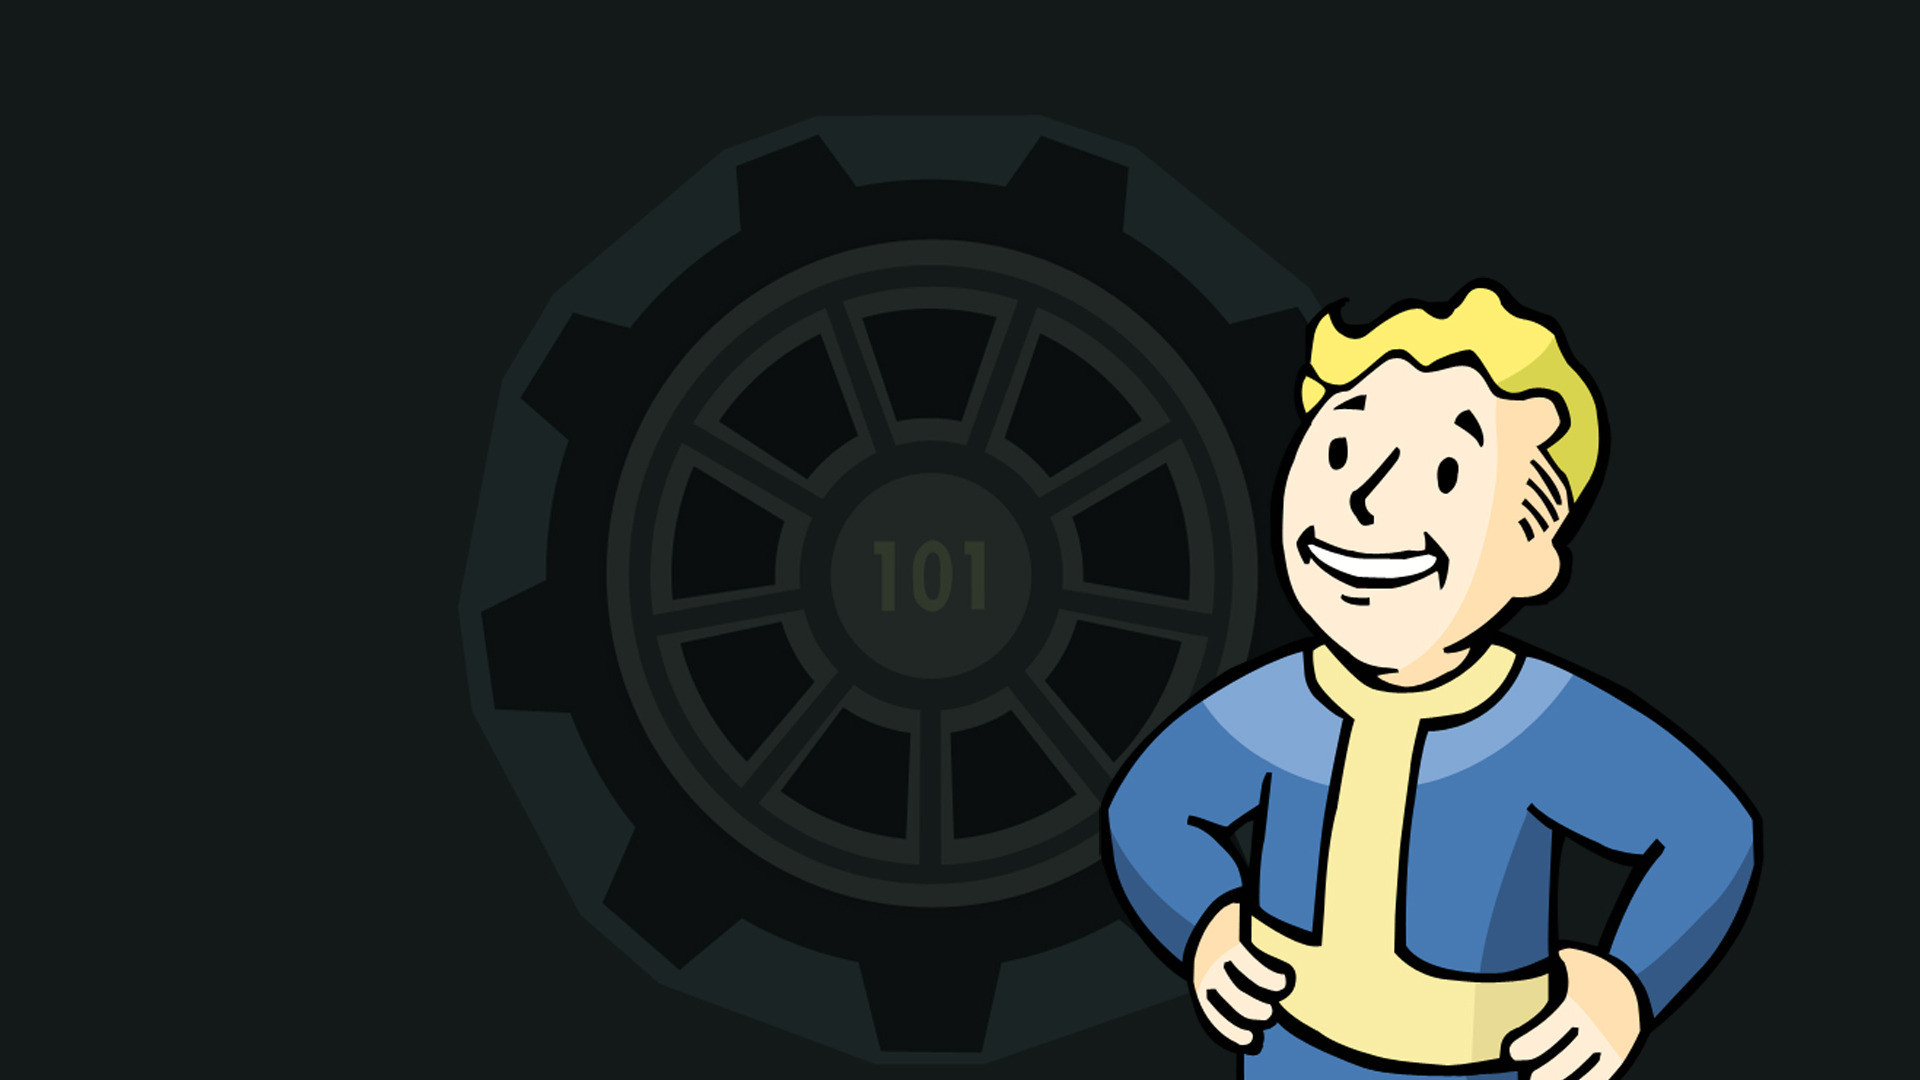 1920x1080 pip boy wallpaper #547392